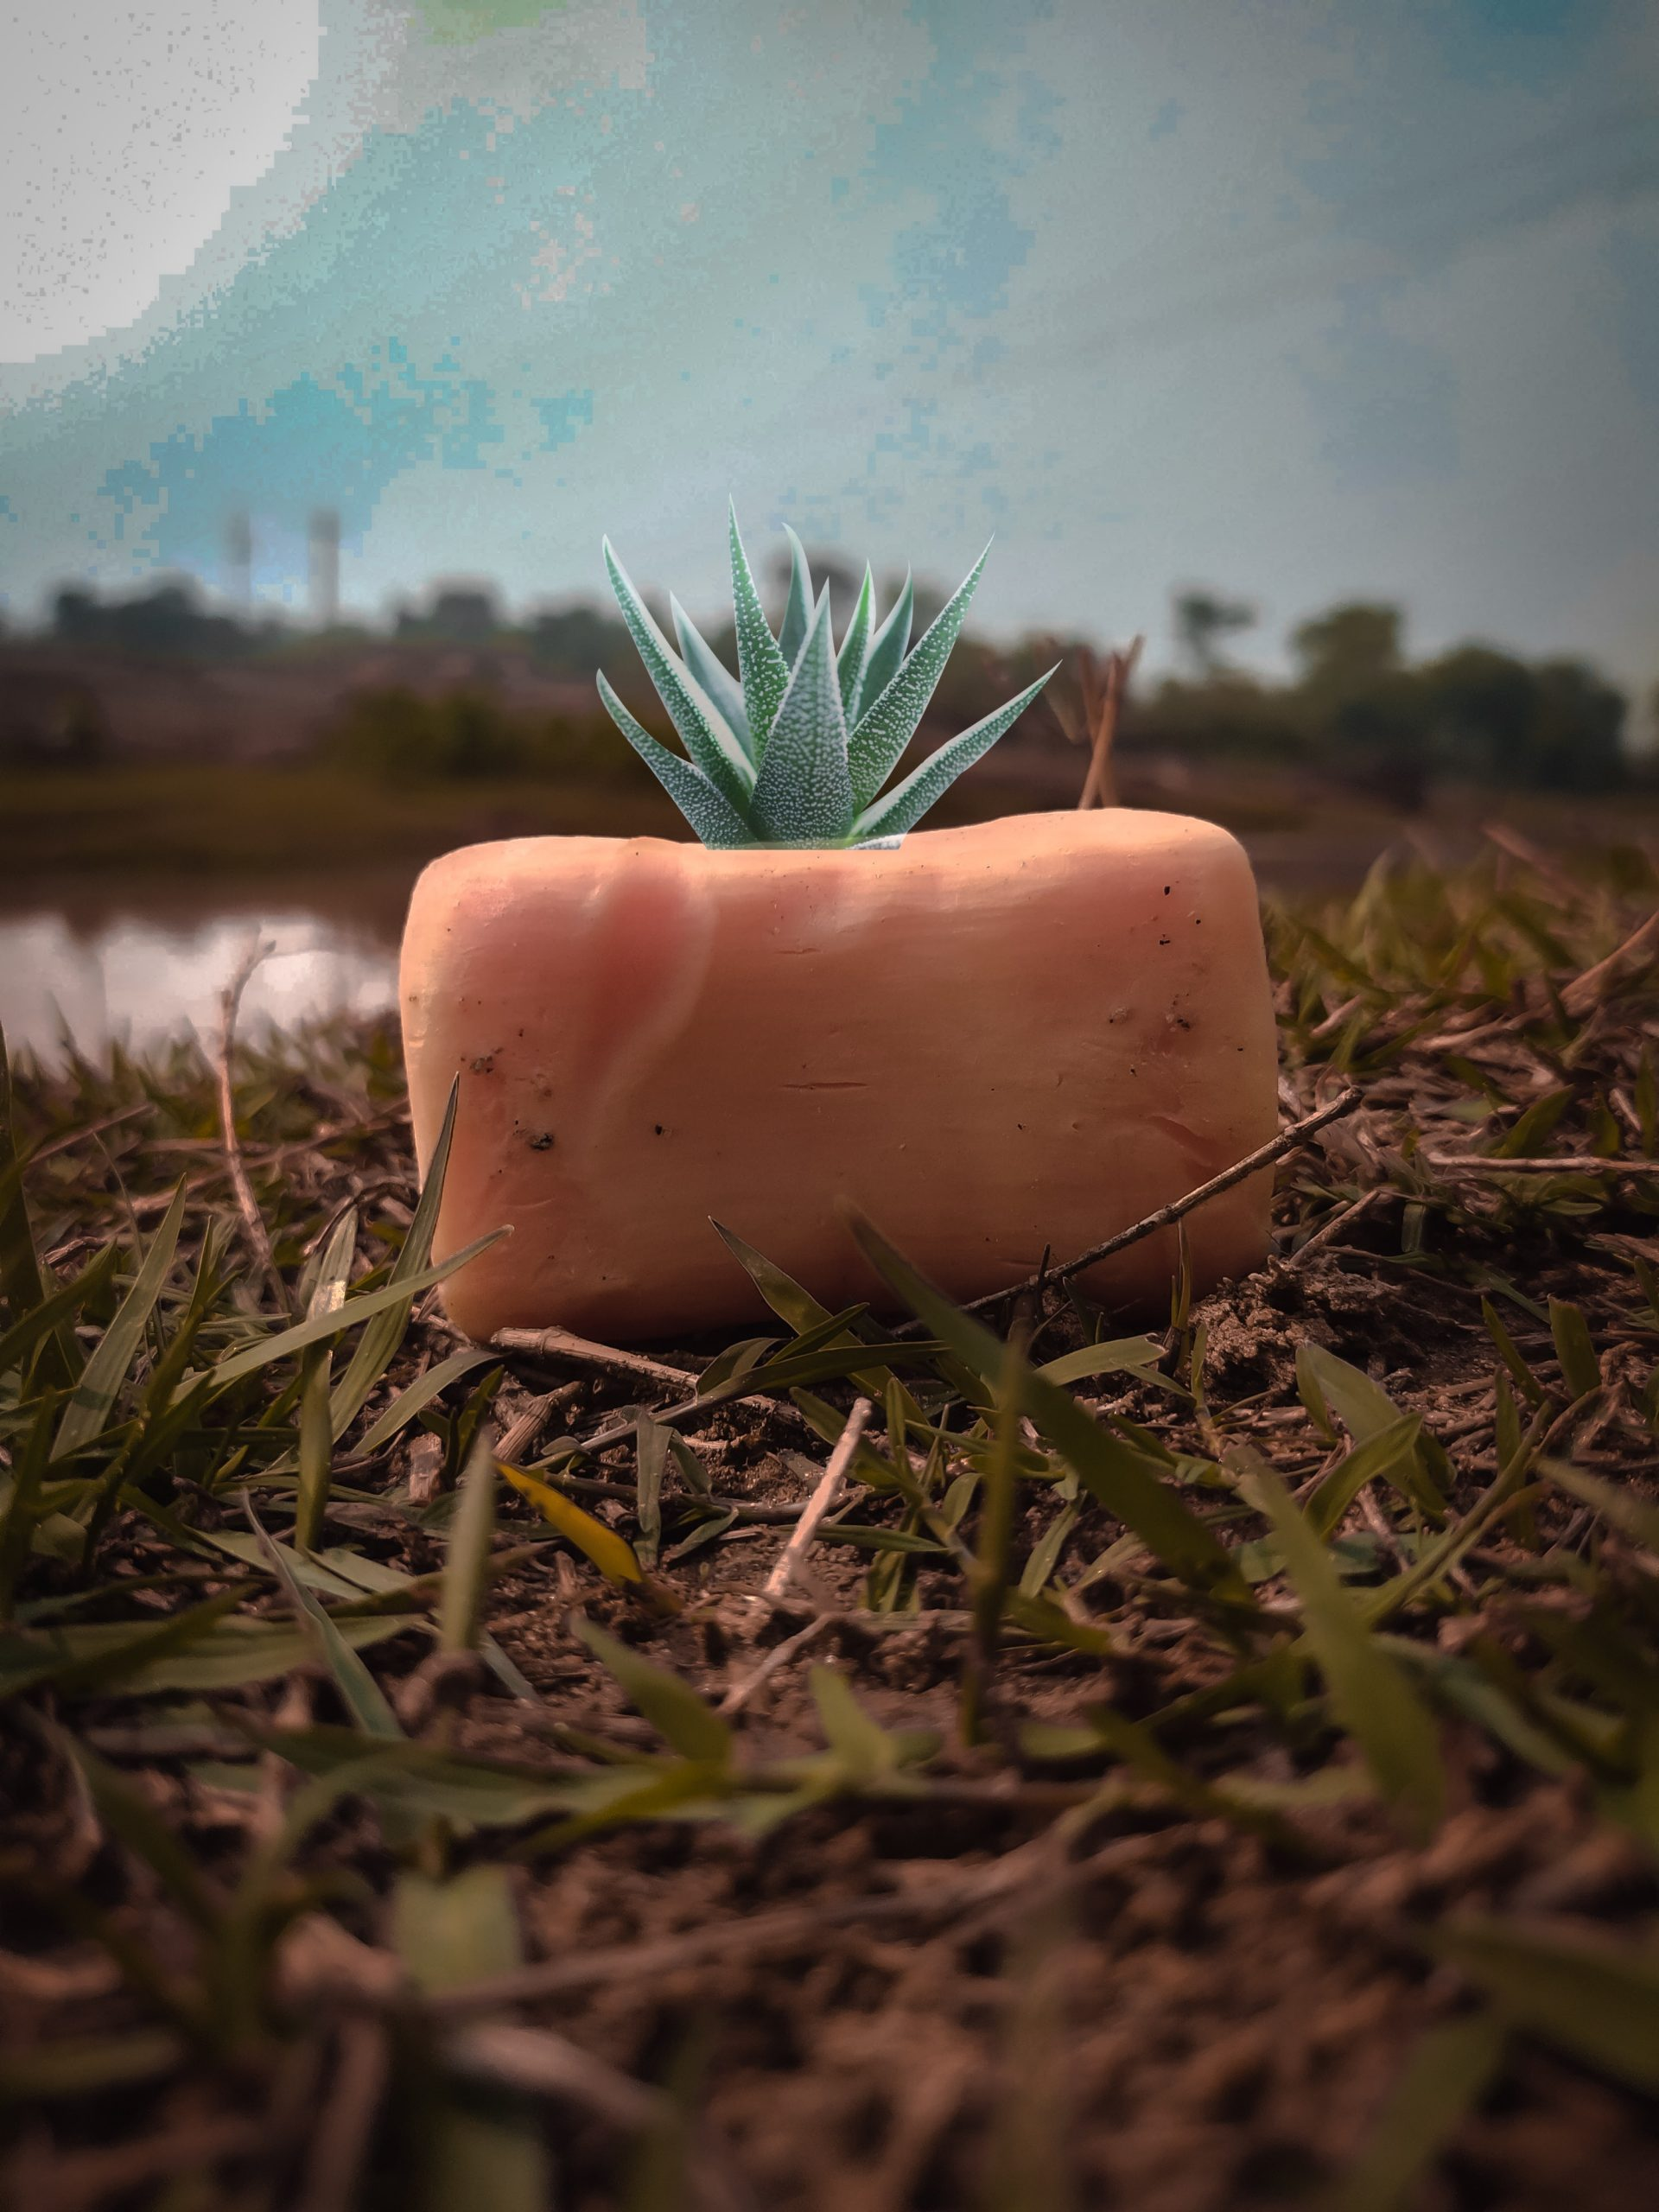 Soap in the grass